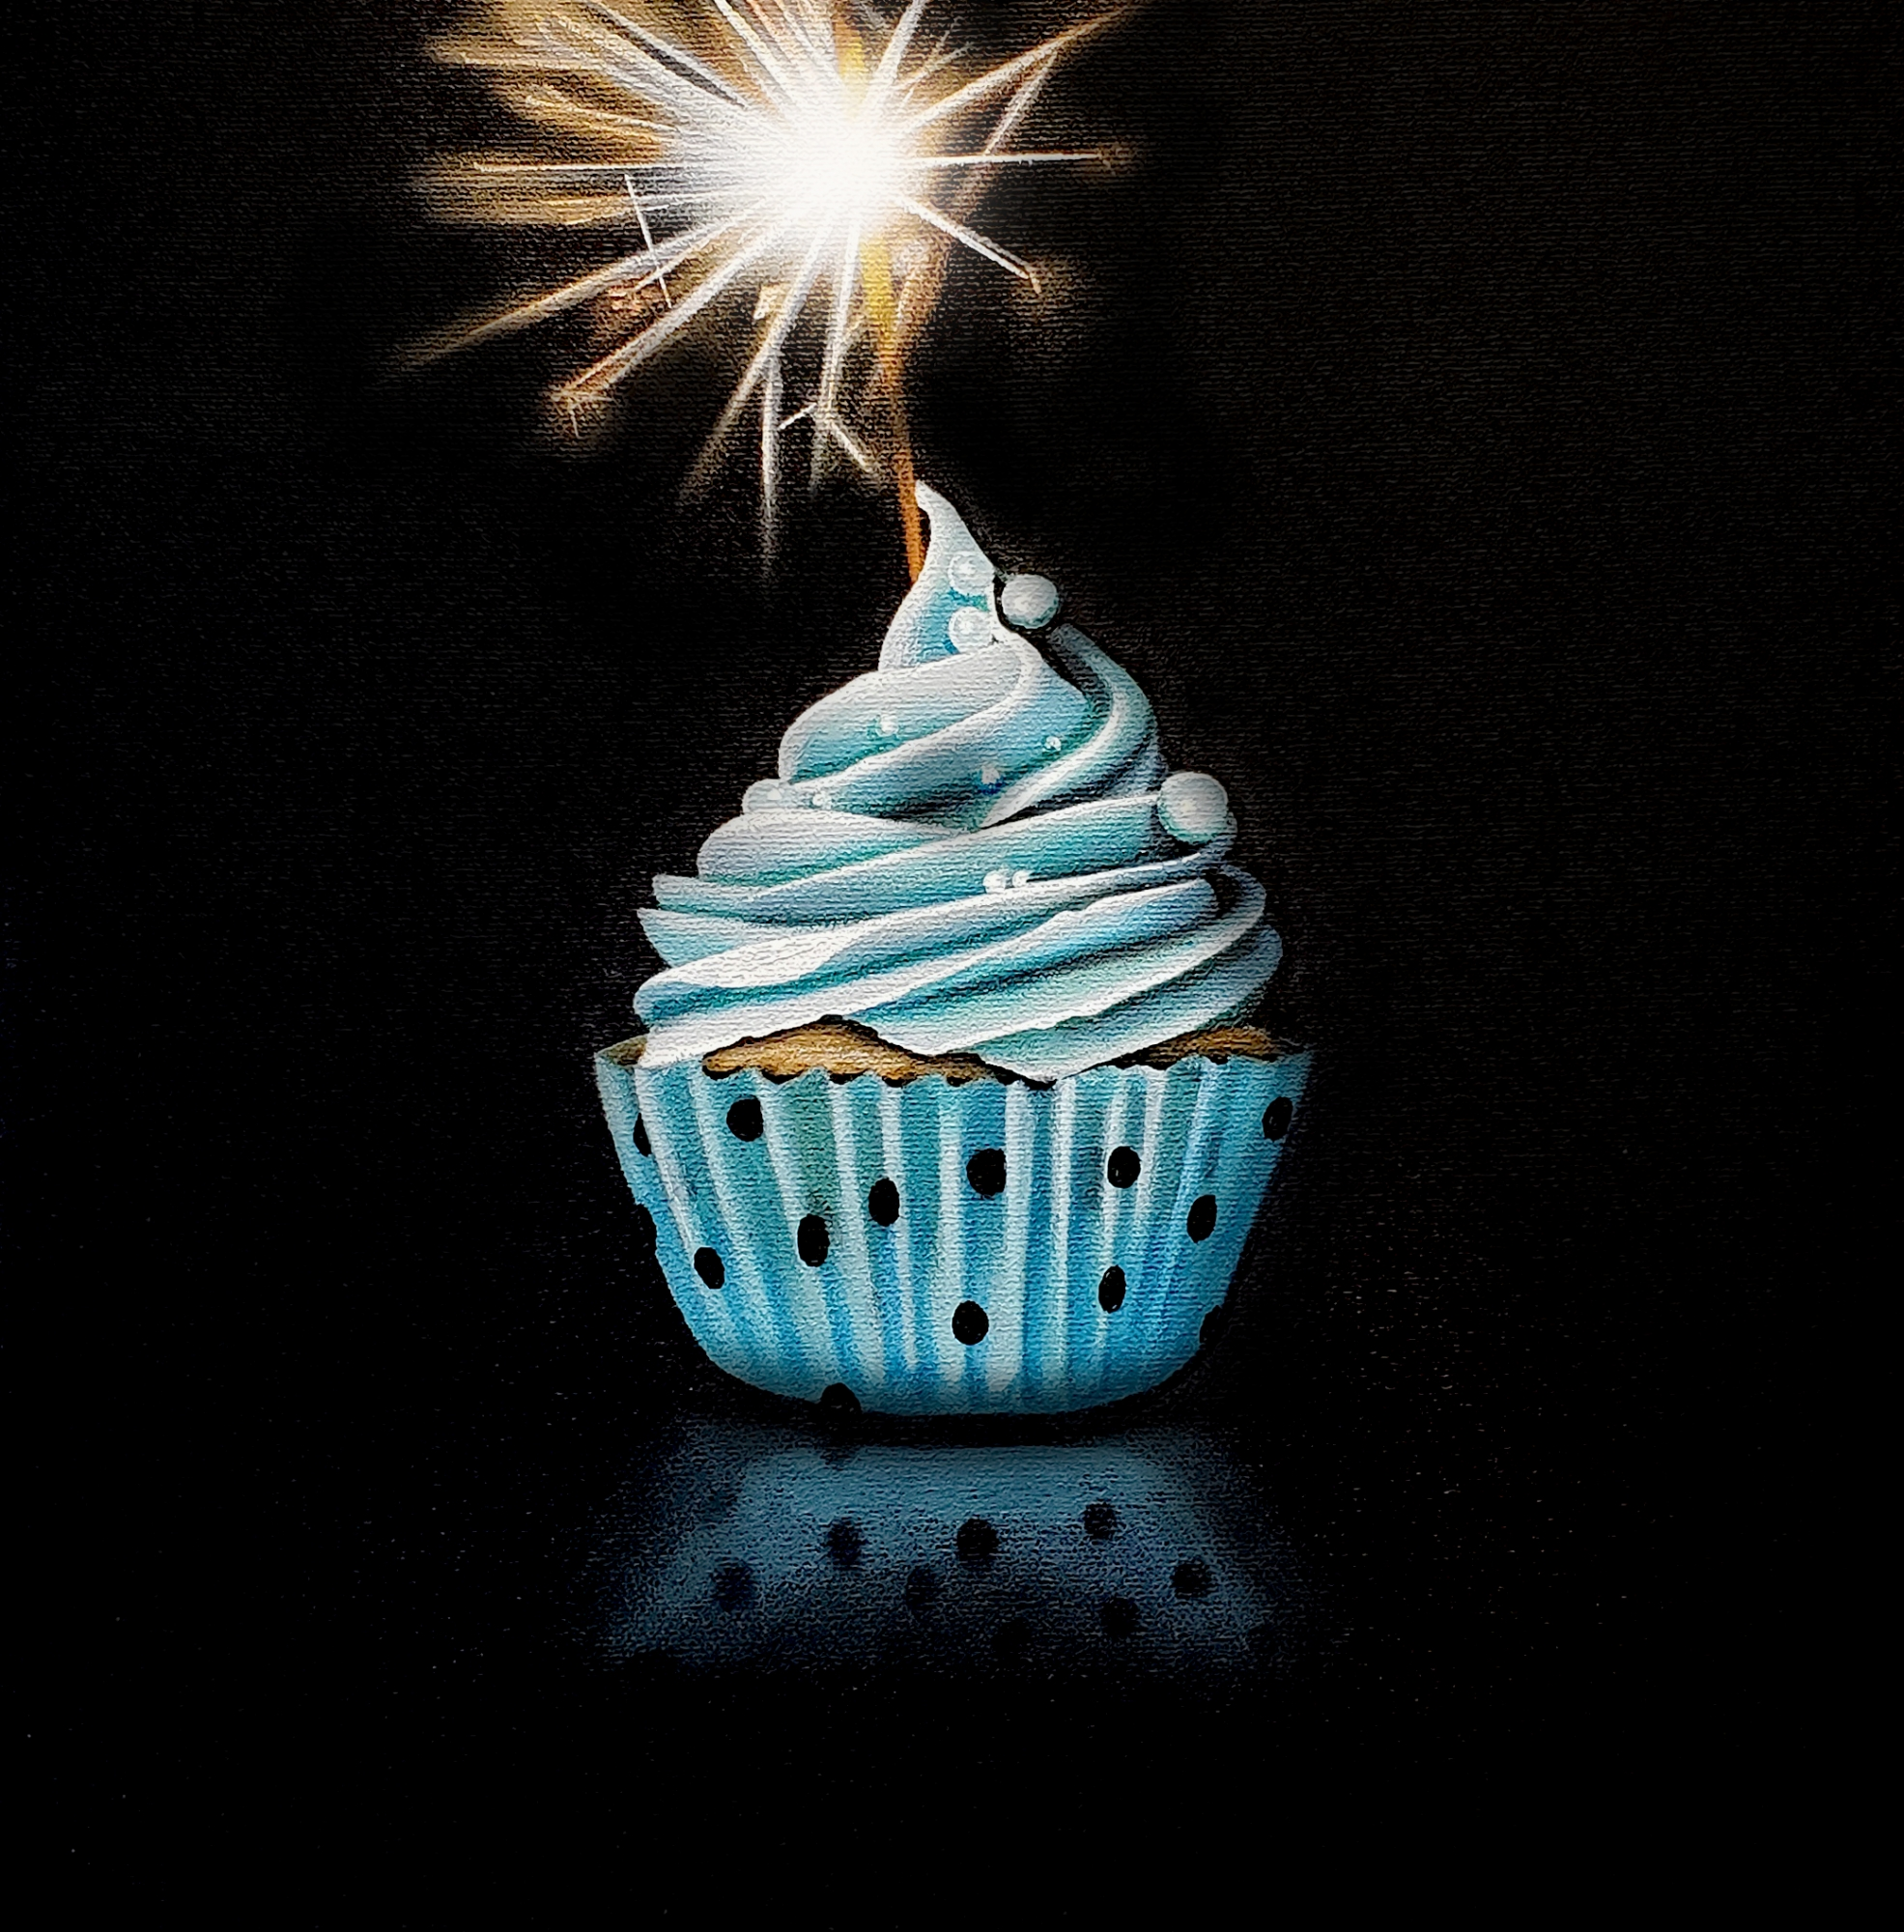 Tasting Room: Blue Cupcake with Sparkler  by Erin Rothstein